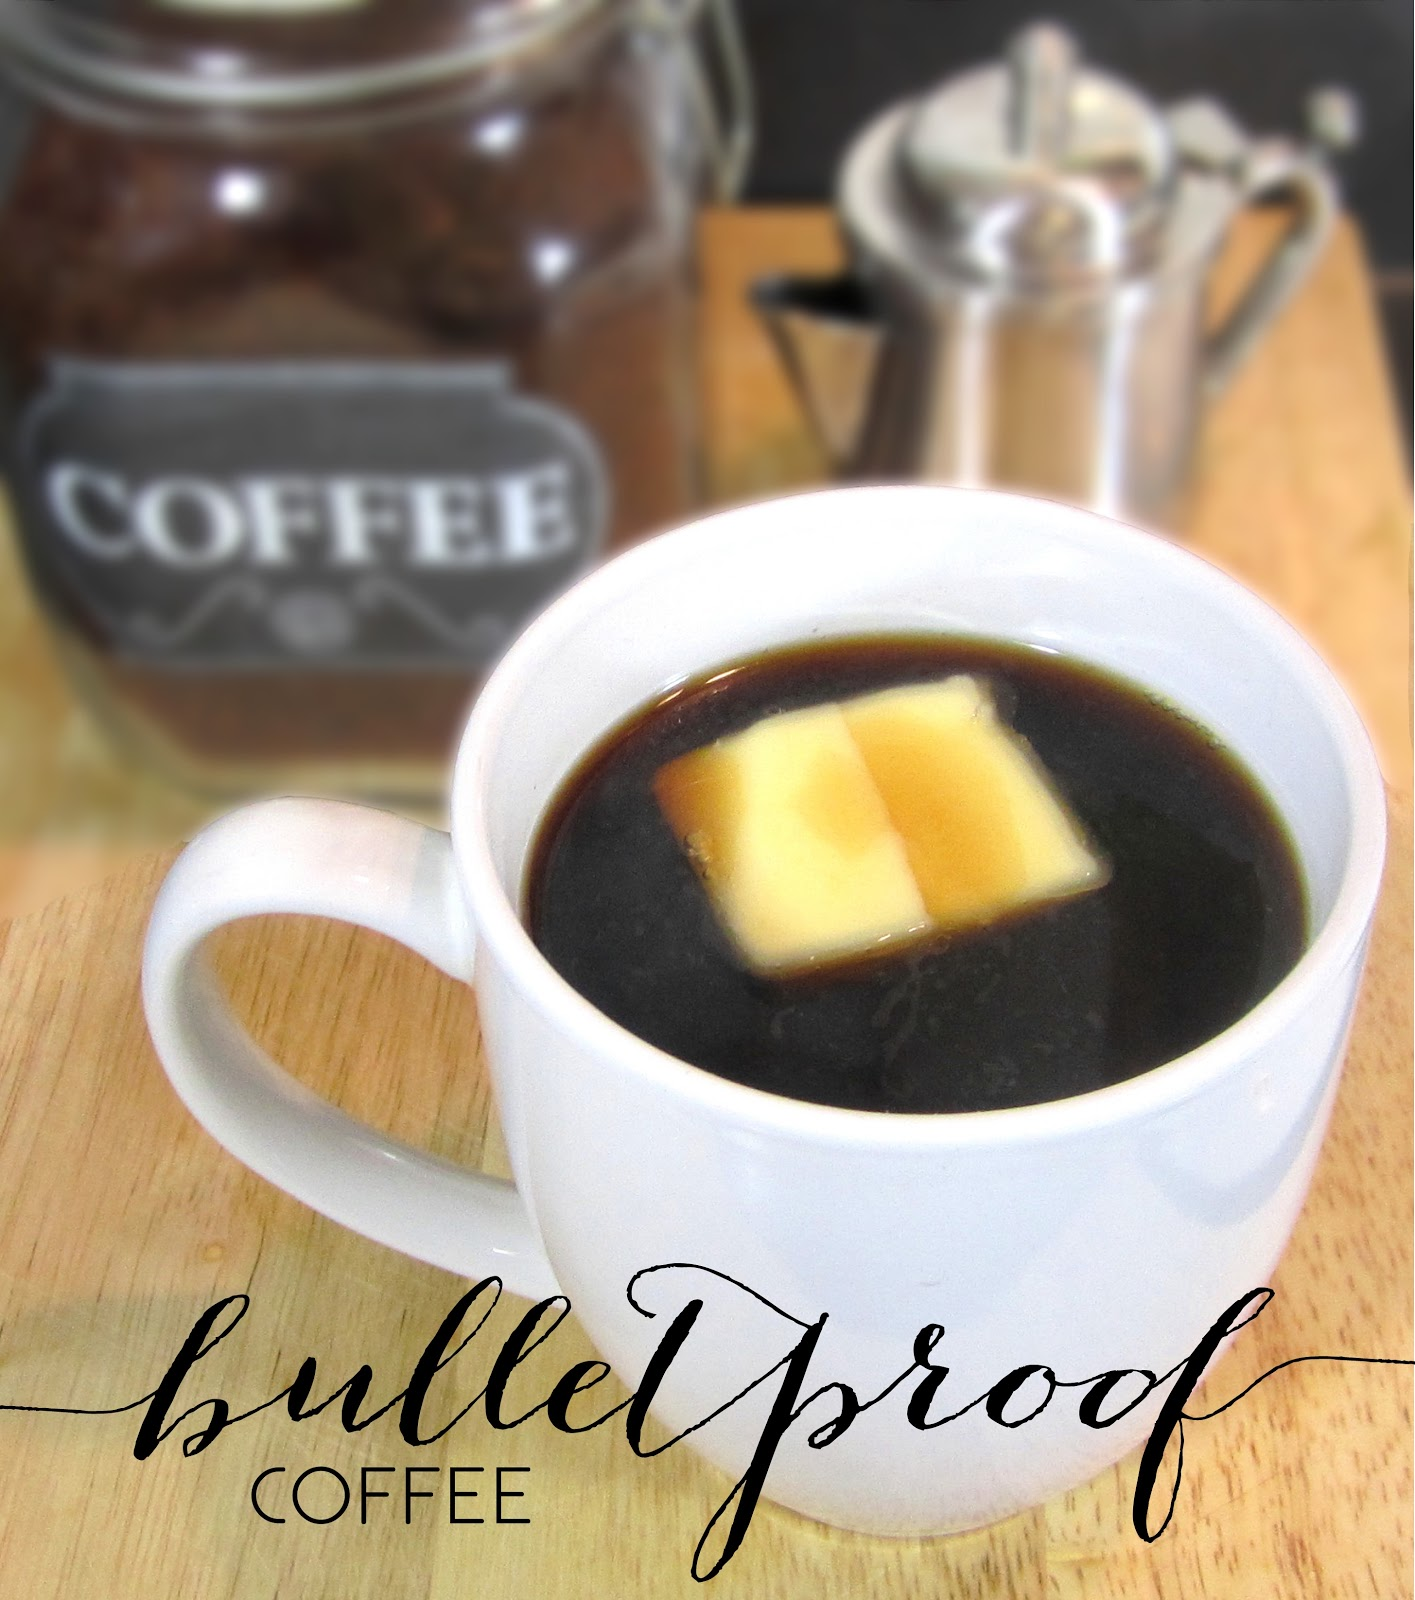 http://www.365designs.com/2014/10/bulletproof-coffee.html